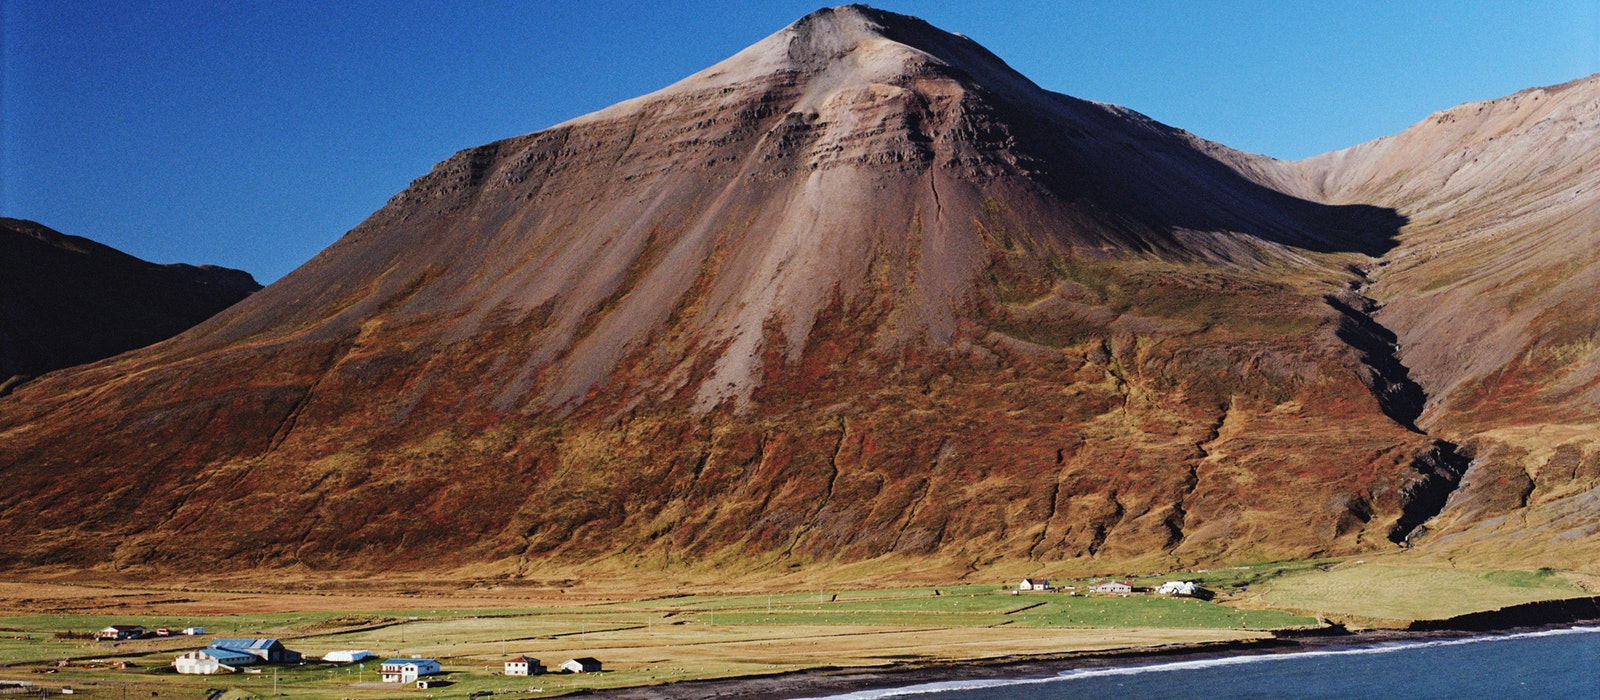 The Borgarfjörður Eystri area, in the eastern fjords, is known for hiking and bird-watching.